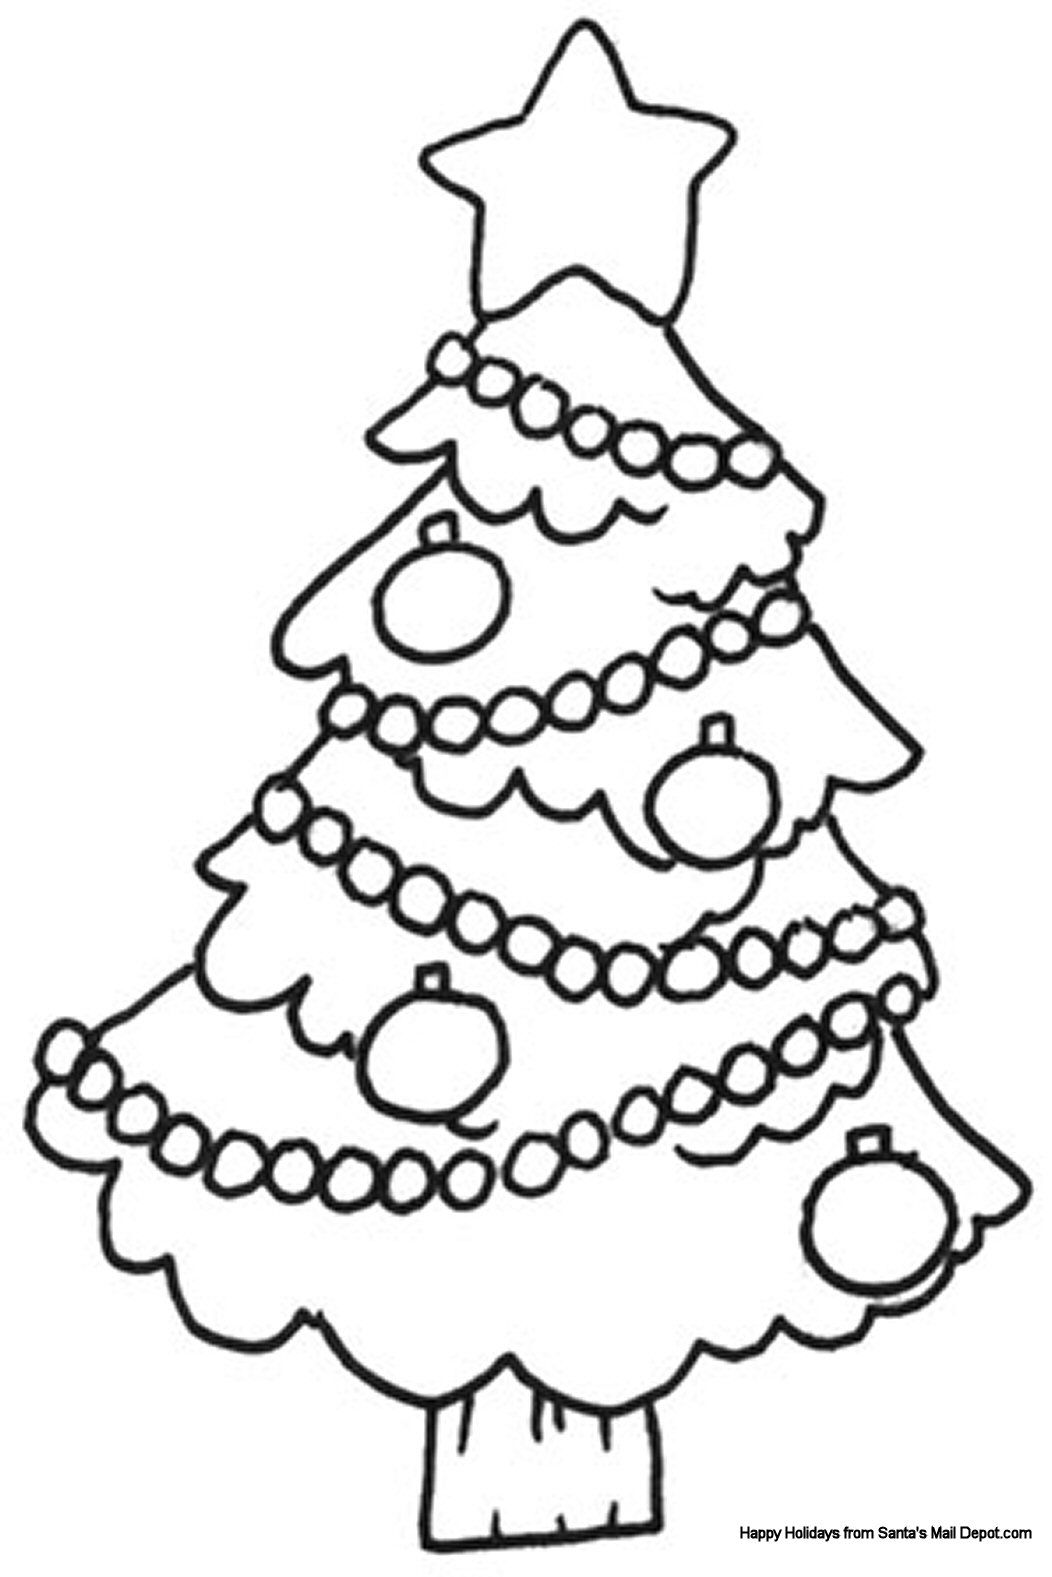 Uncategorized Christmas Printables Coloring Pages christmas colouring sheet kids pinterest coloring free online printable pages sheets for get the latest im